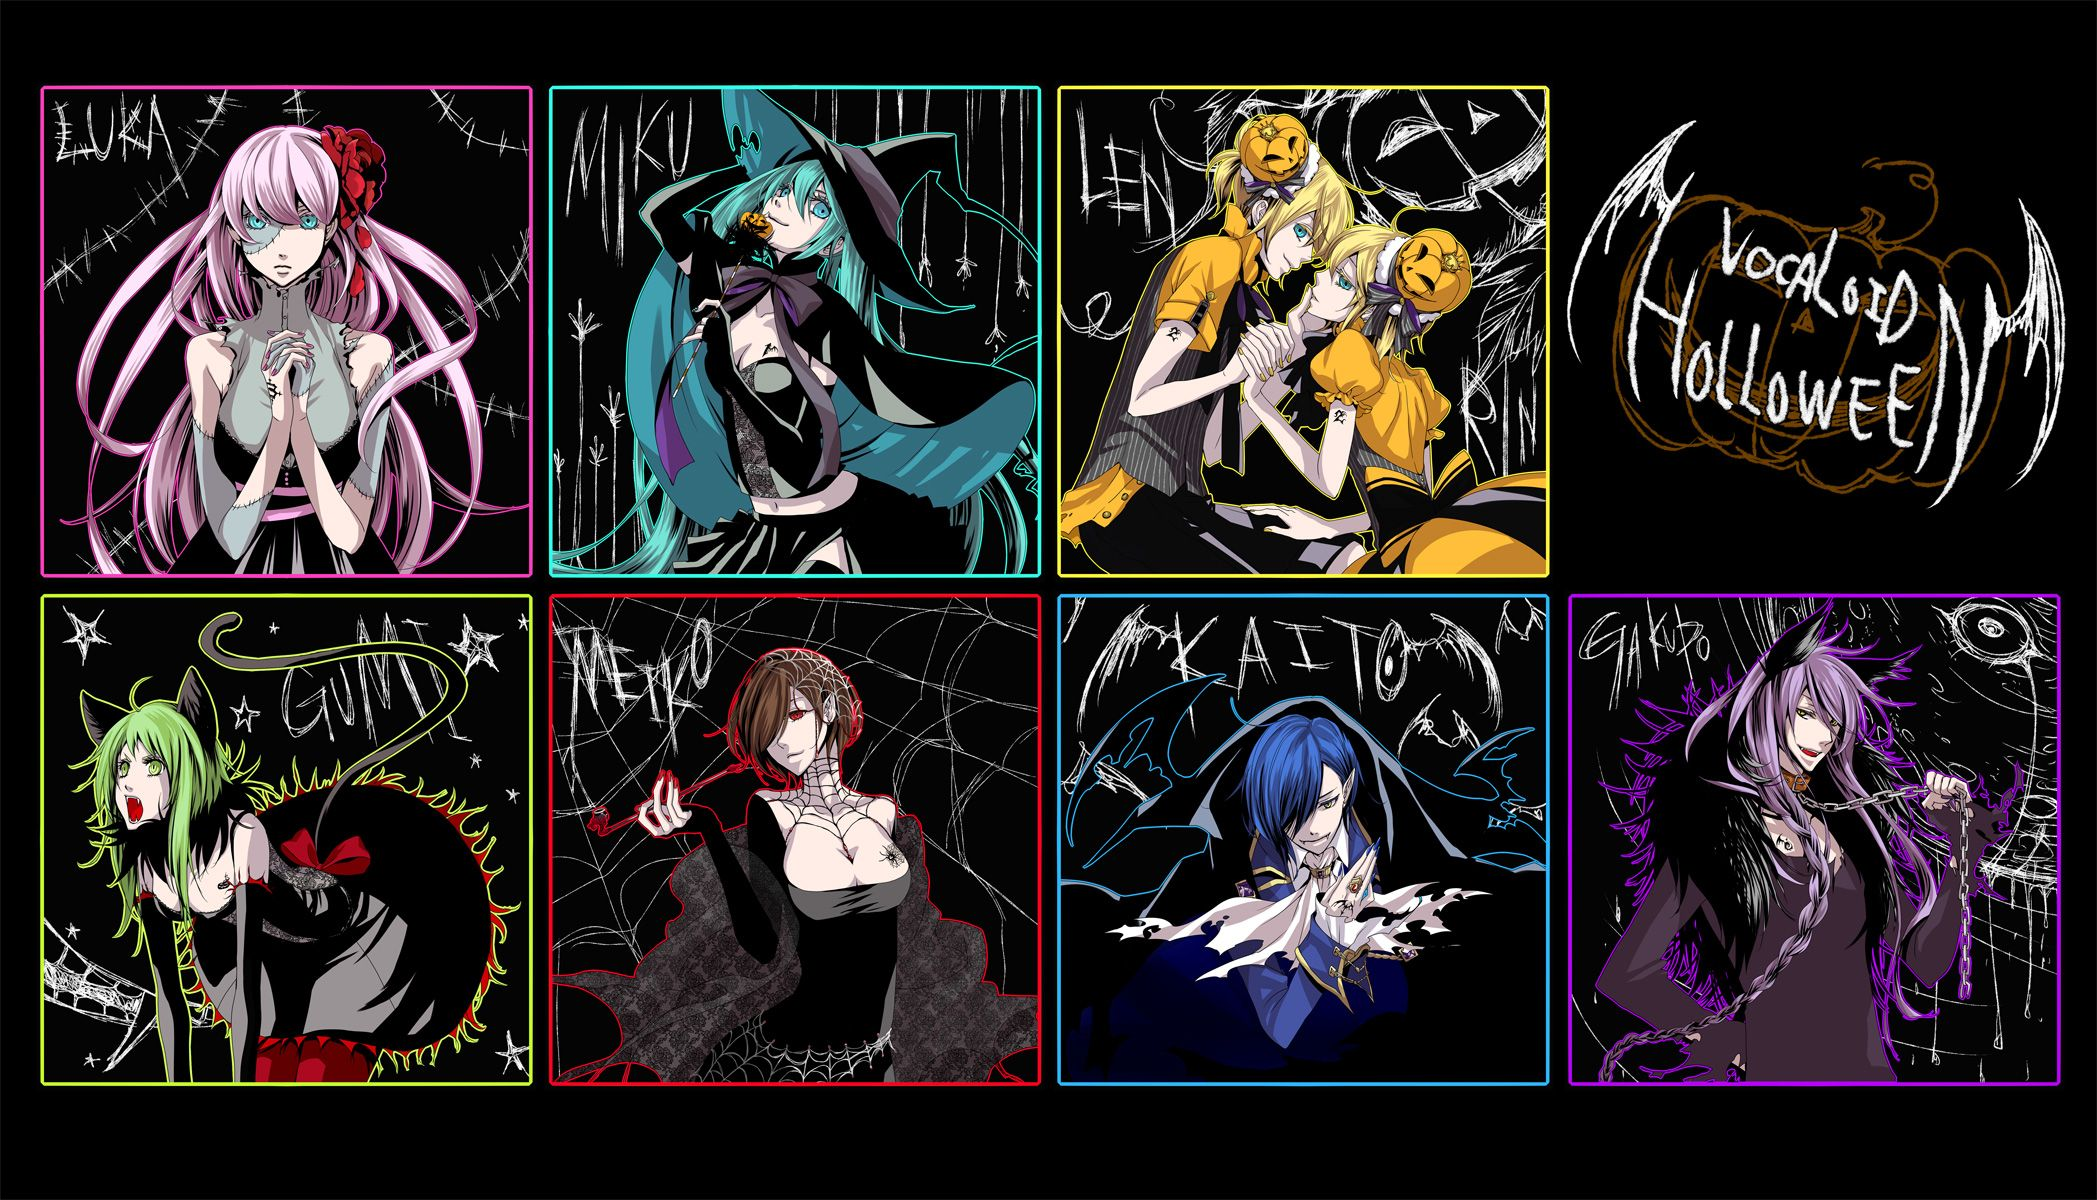 Vocaloid Halloween | Vocaloid | Pinterest | Vocaloid and Anime